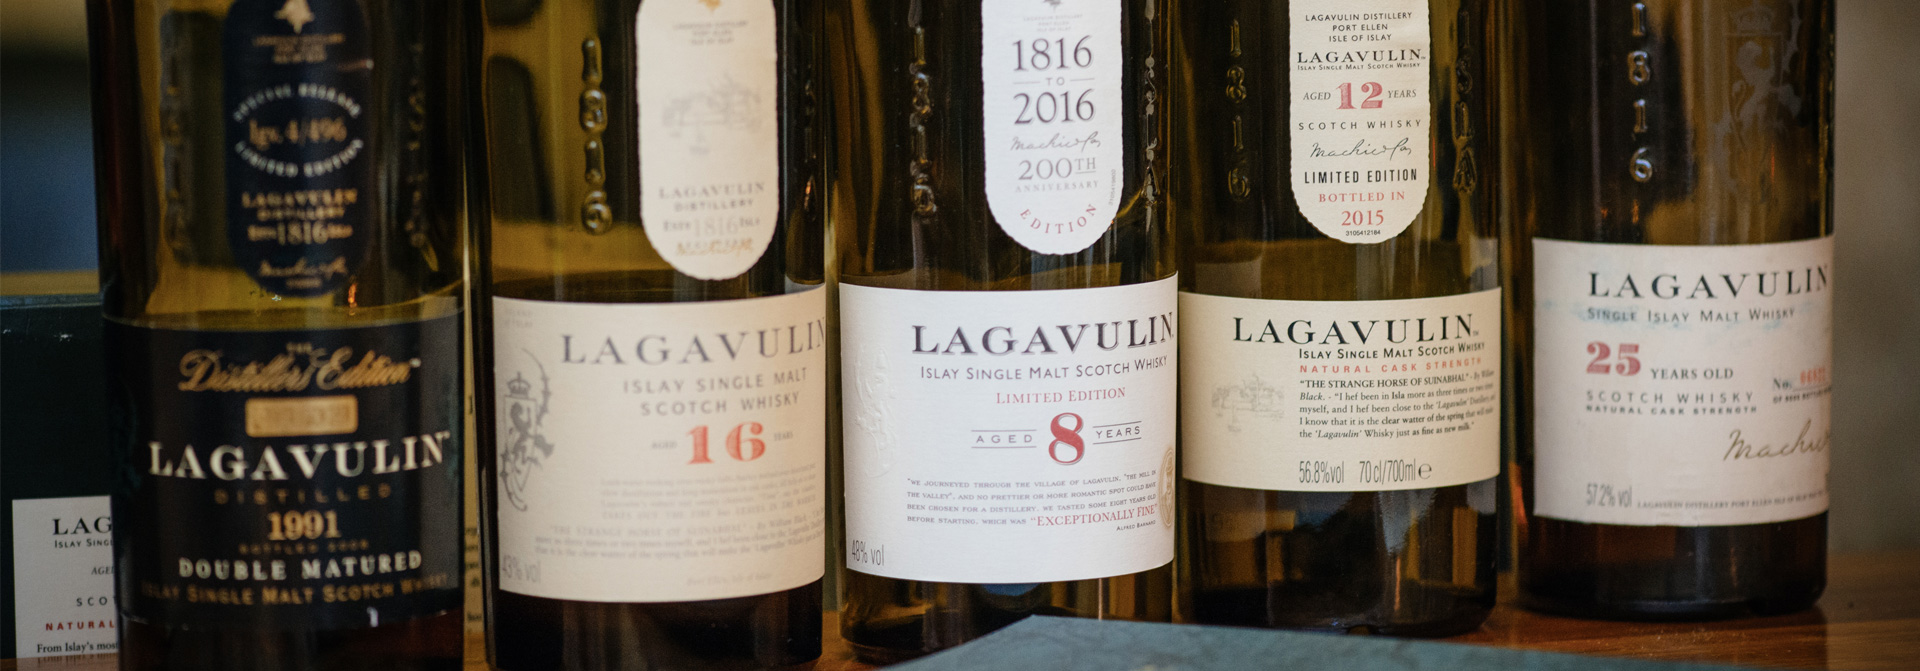 lagavulin whisky tasting the tasters club ουισκι